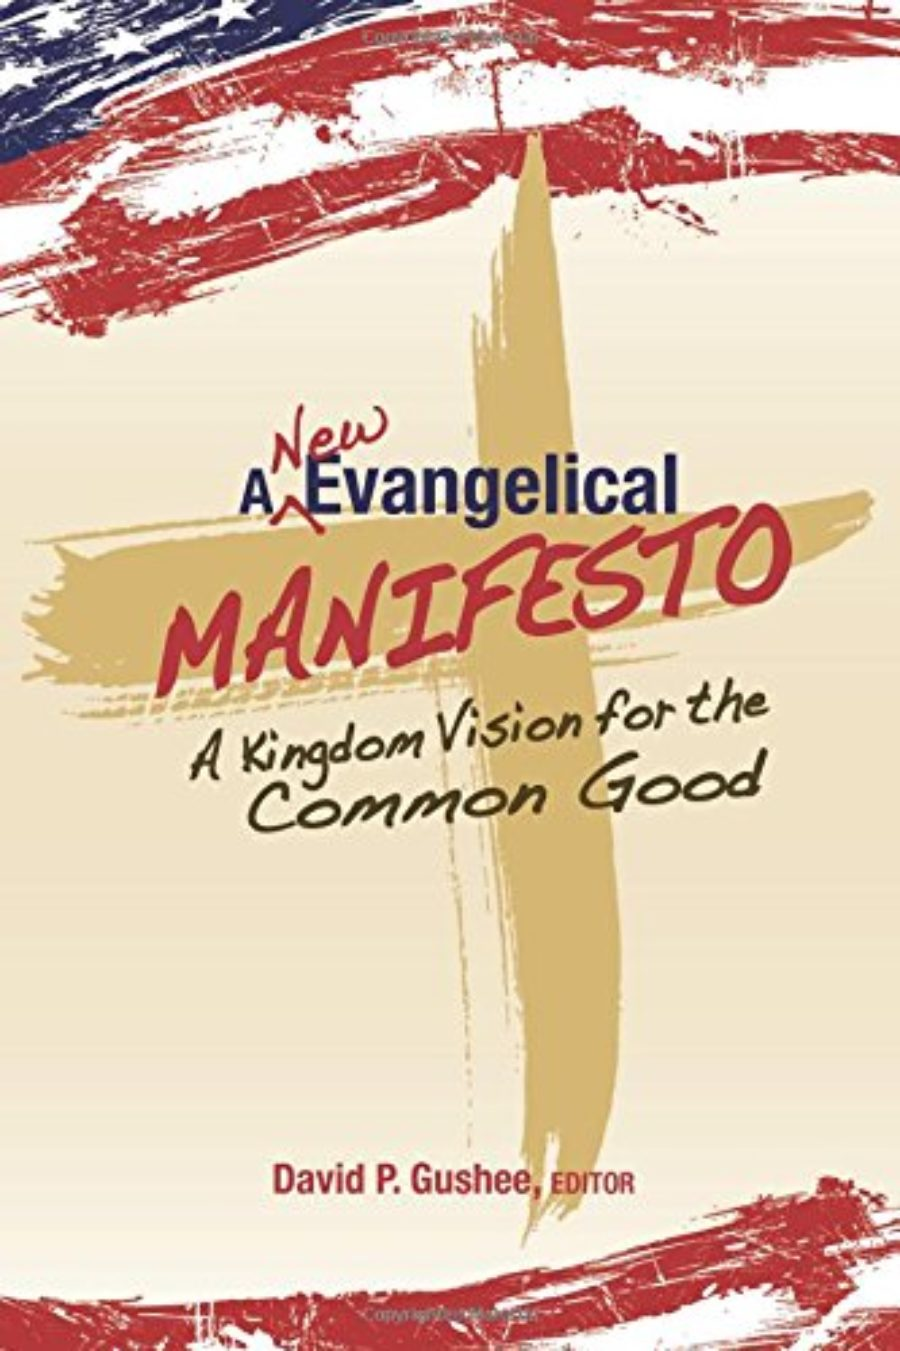 Cover of A New Evangelical Manifesto: A Kingdom Vision for the Common Good